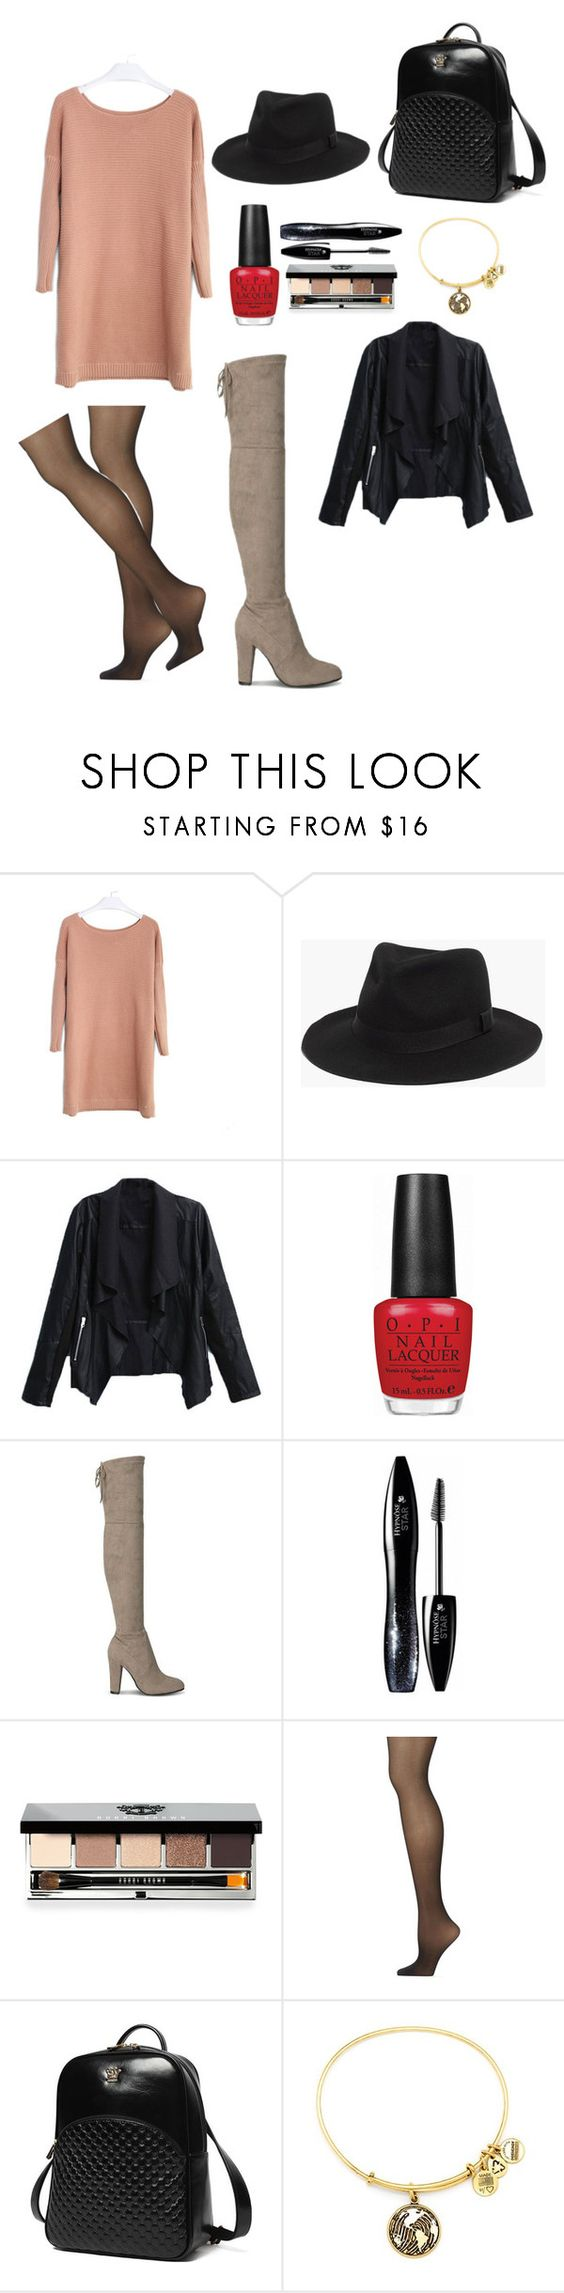 """Comfy in Leather"" by vivianrose-11 on Polyvore featuring Madewell, OPI, Lancôme, Bobbi Brown Cosmetics, Calvin Klein, Princess Carousel and Alex and Ani"